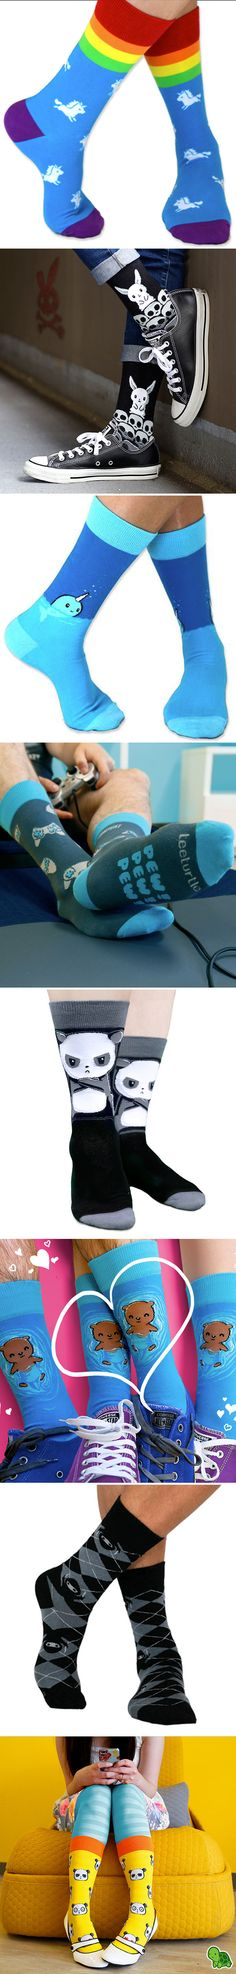 We'll knock your socks ON with our super-soft, super-cute socks!